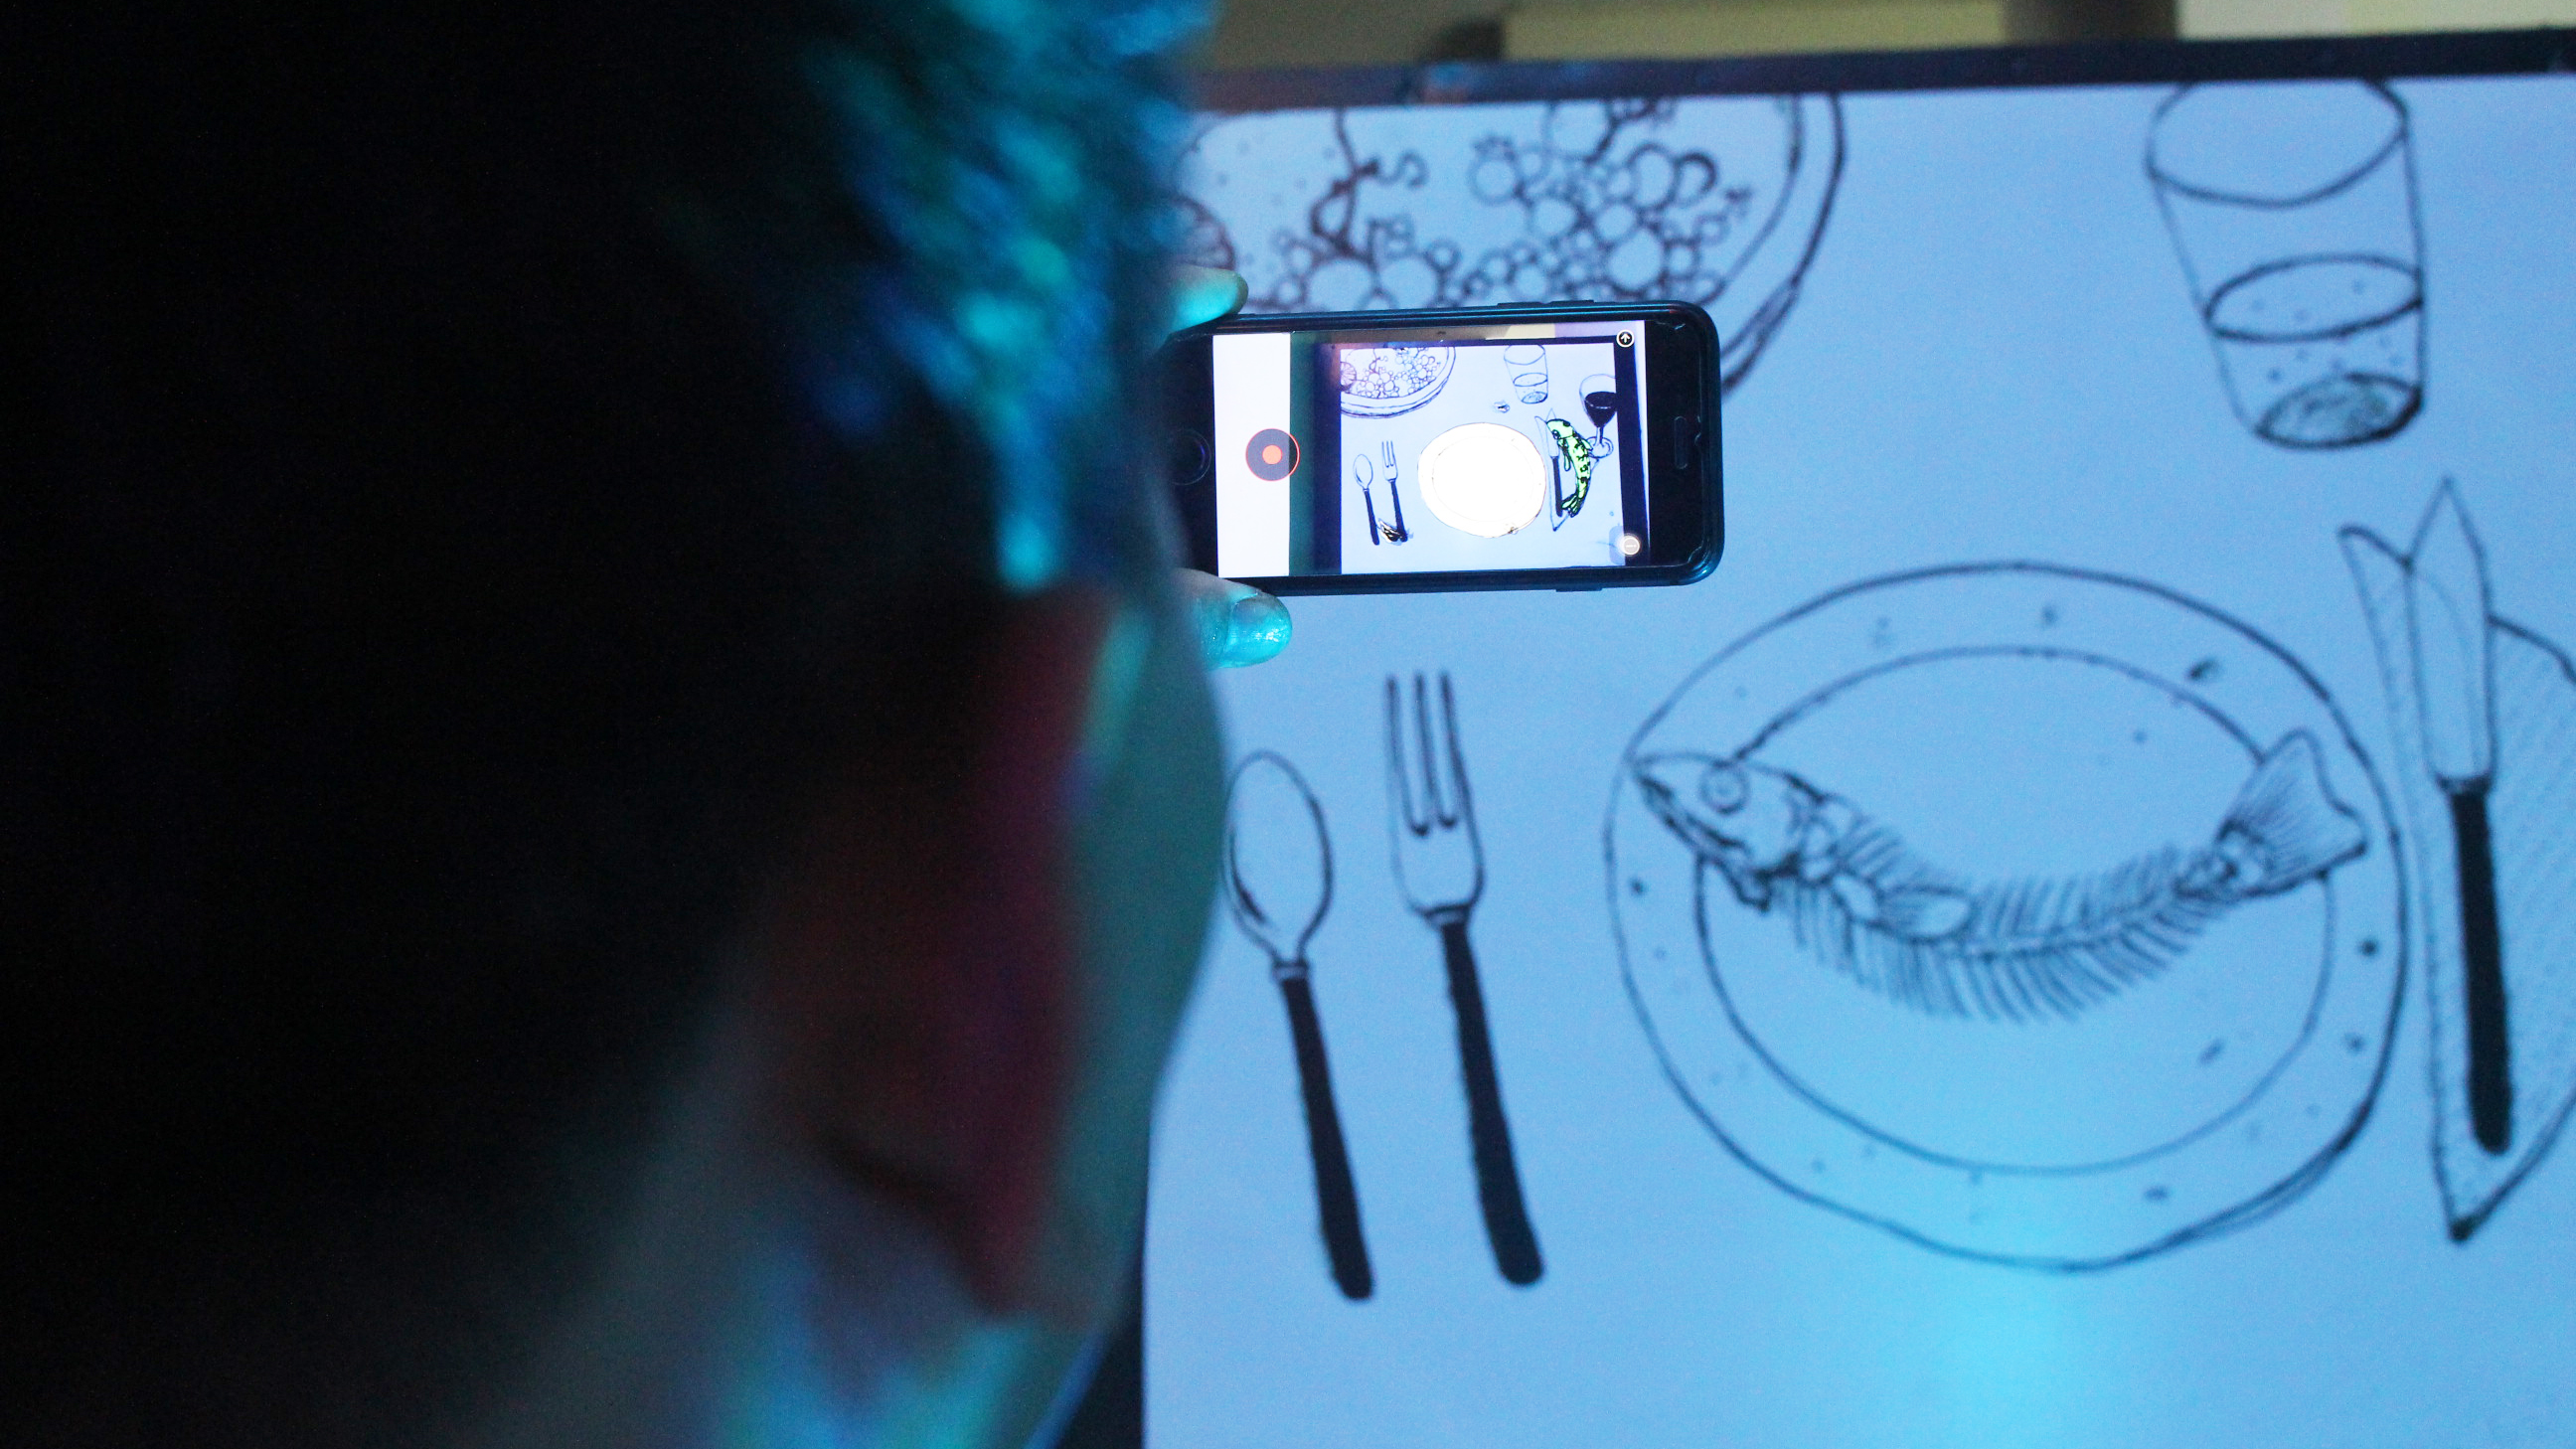 People can enjoy the artworks via an application called EyeJack on their smartphones.